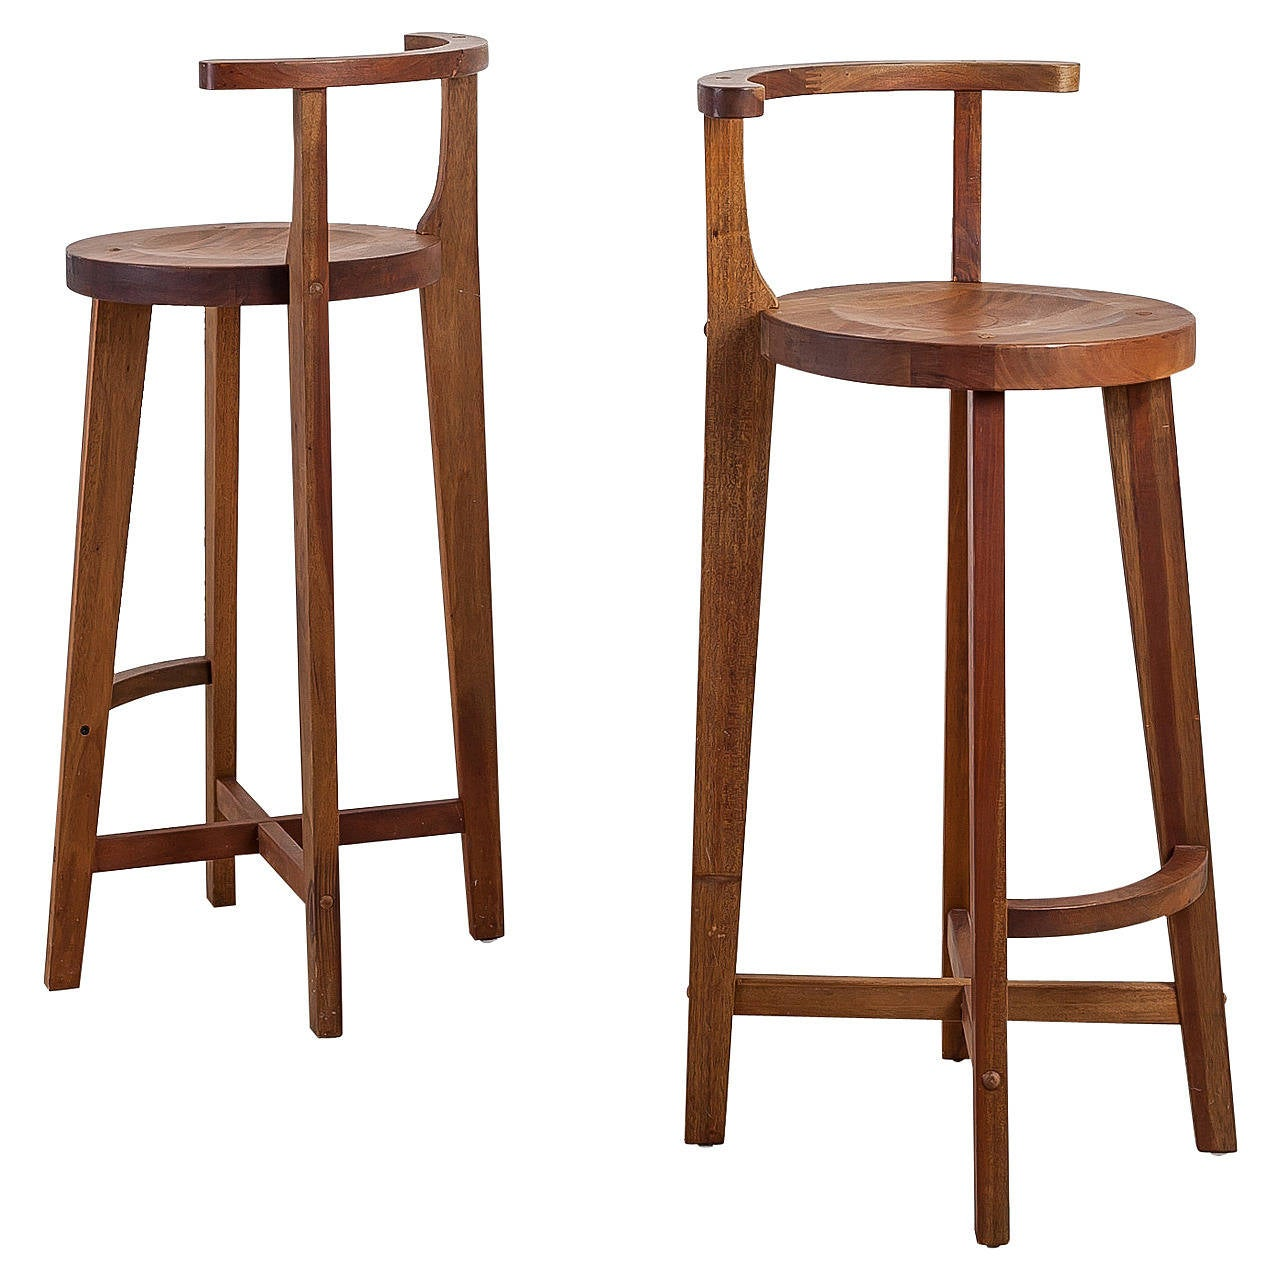 Pair studio crafted wooden bar stools with rounded back